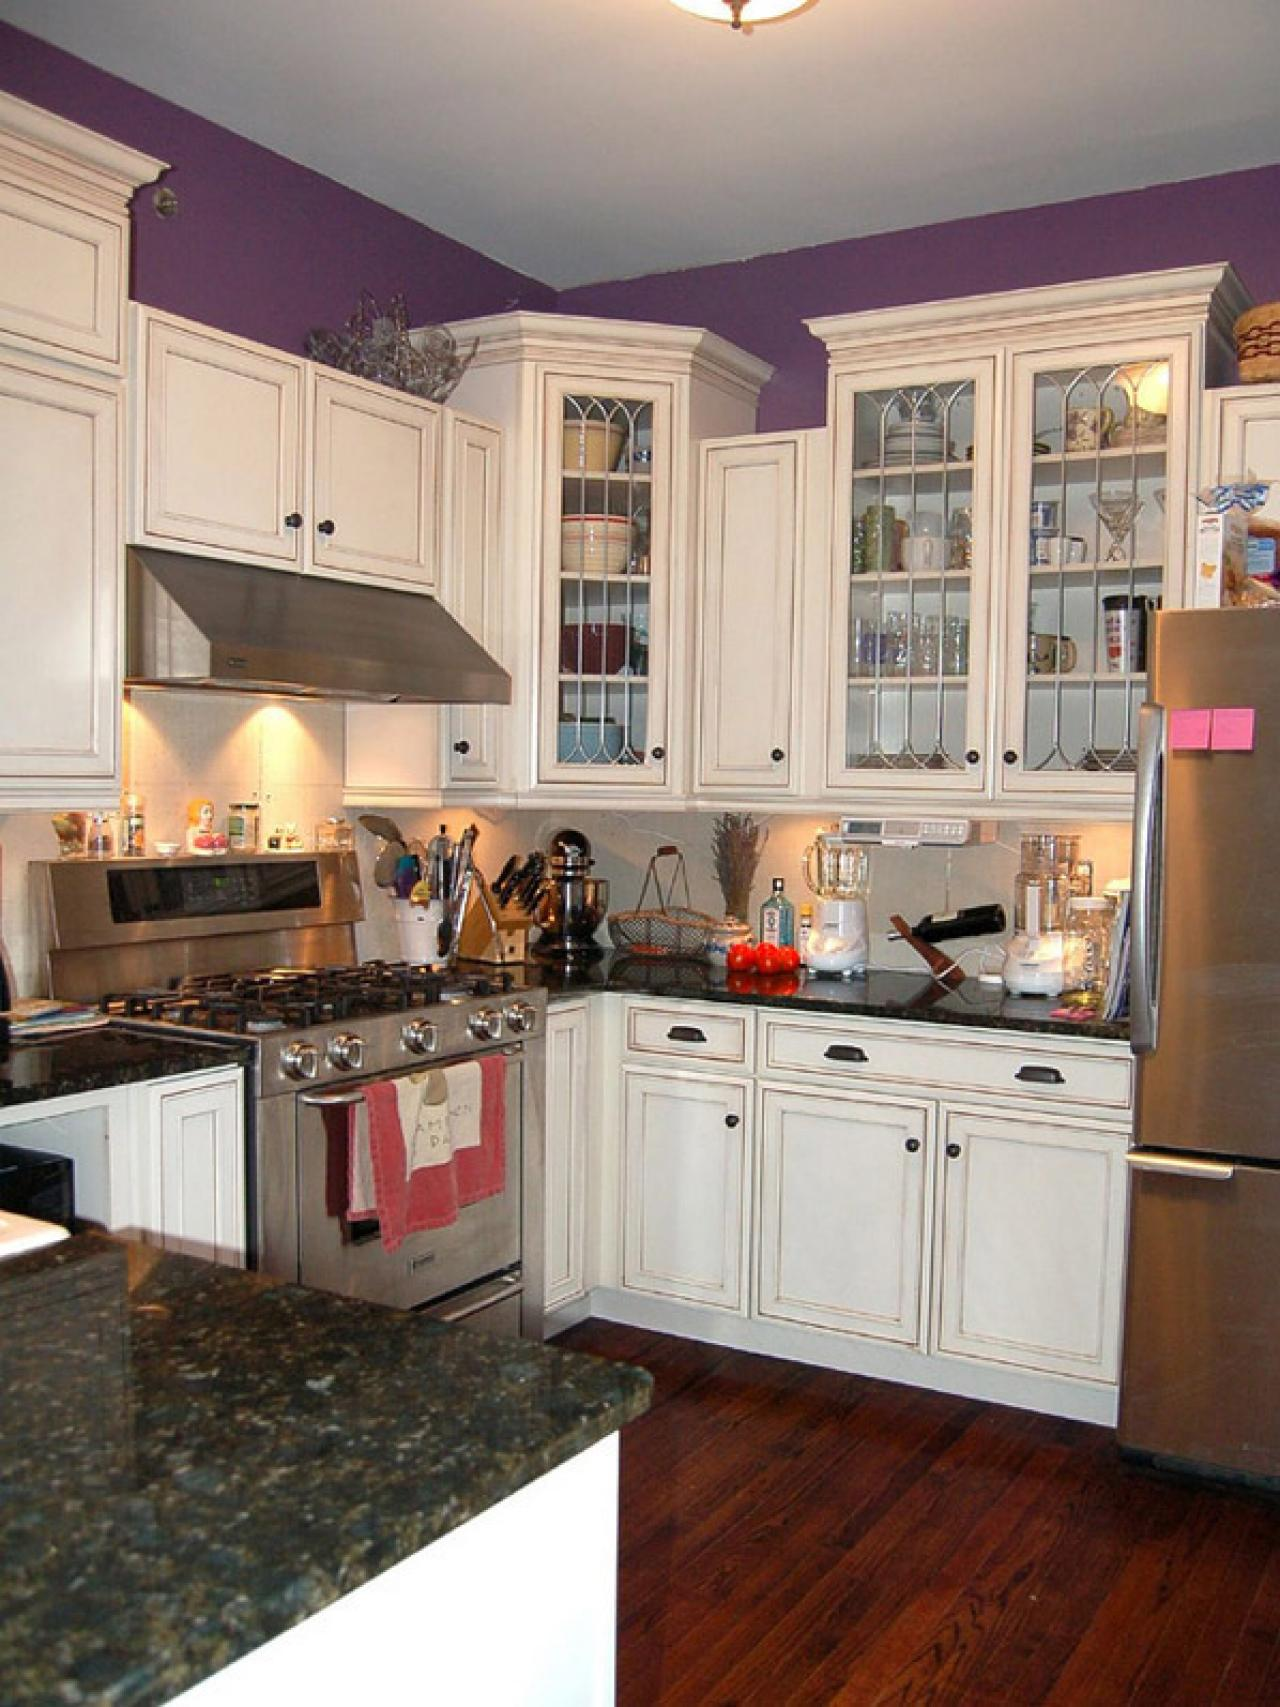 Small kitchen layouts pictures ideas tips from hgtv hgtv Best kitchen ideas for small kitchens